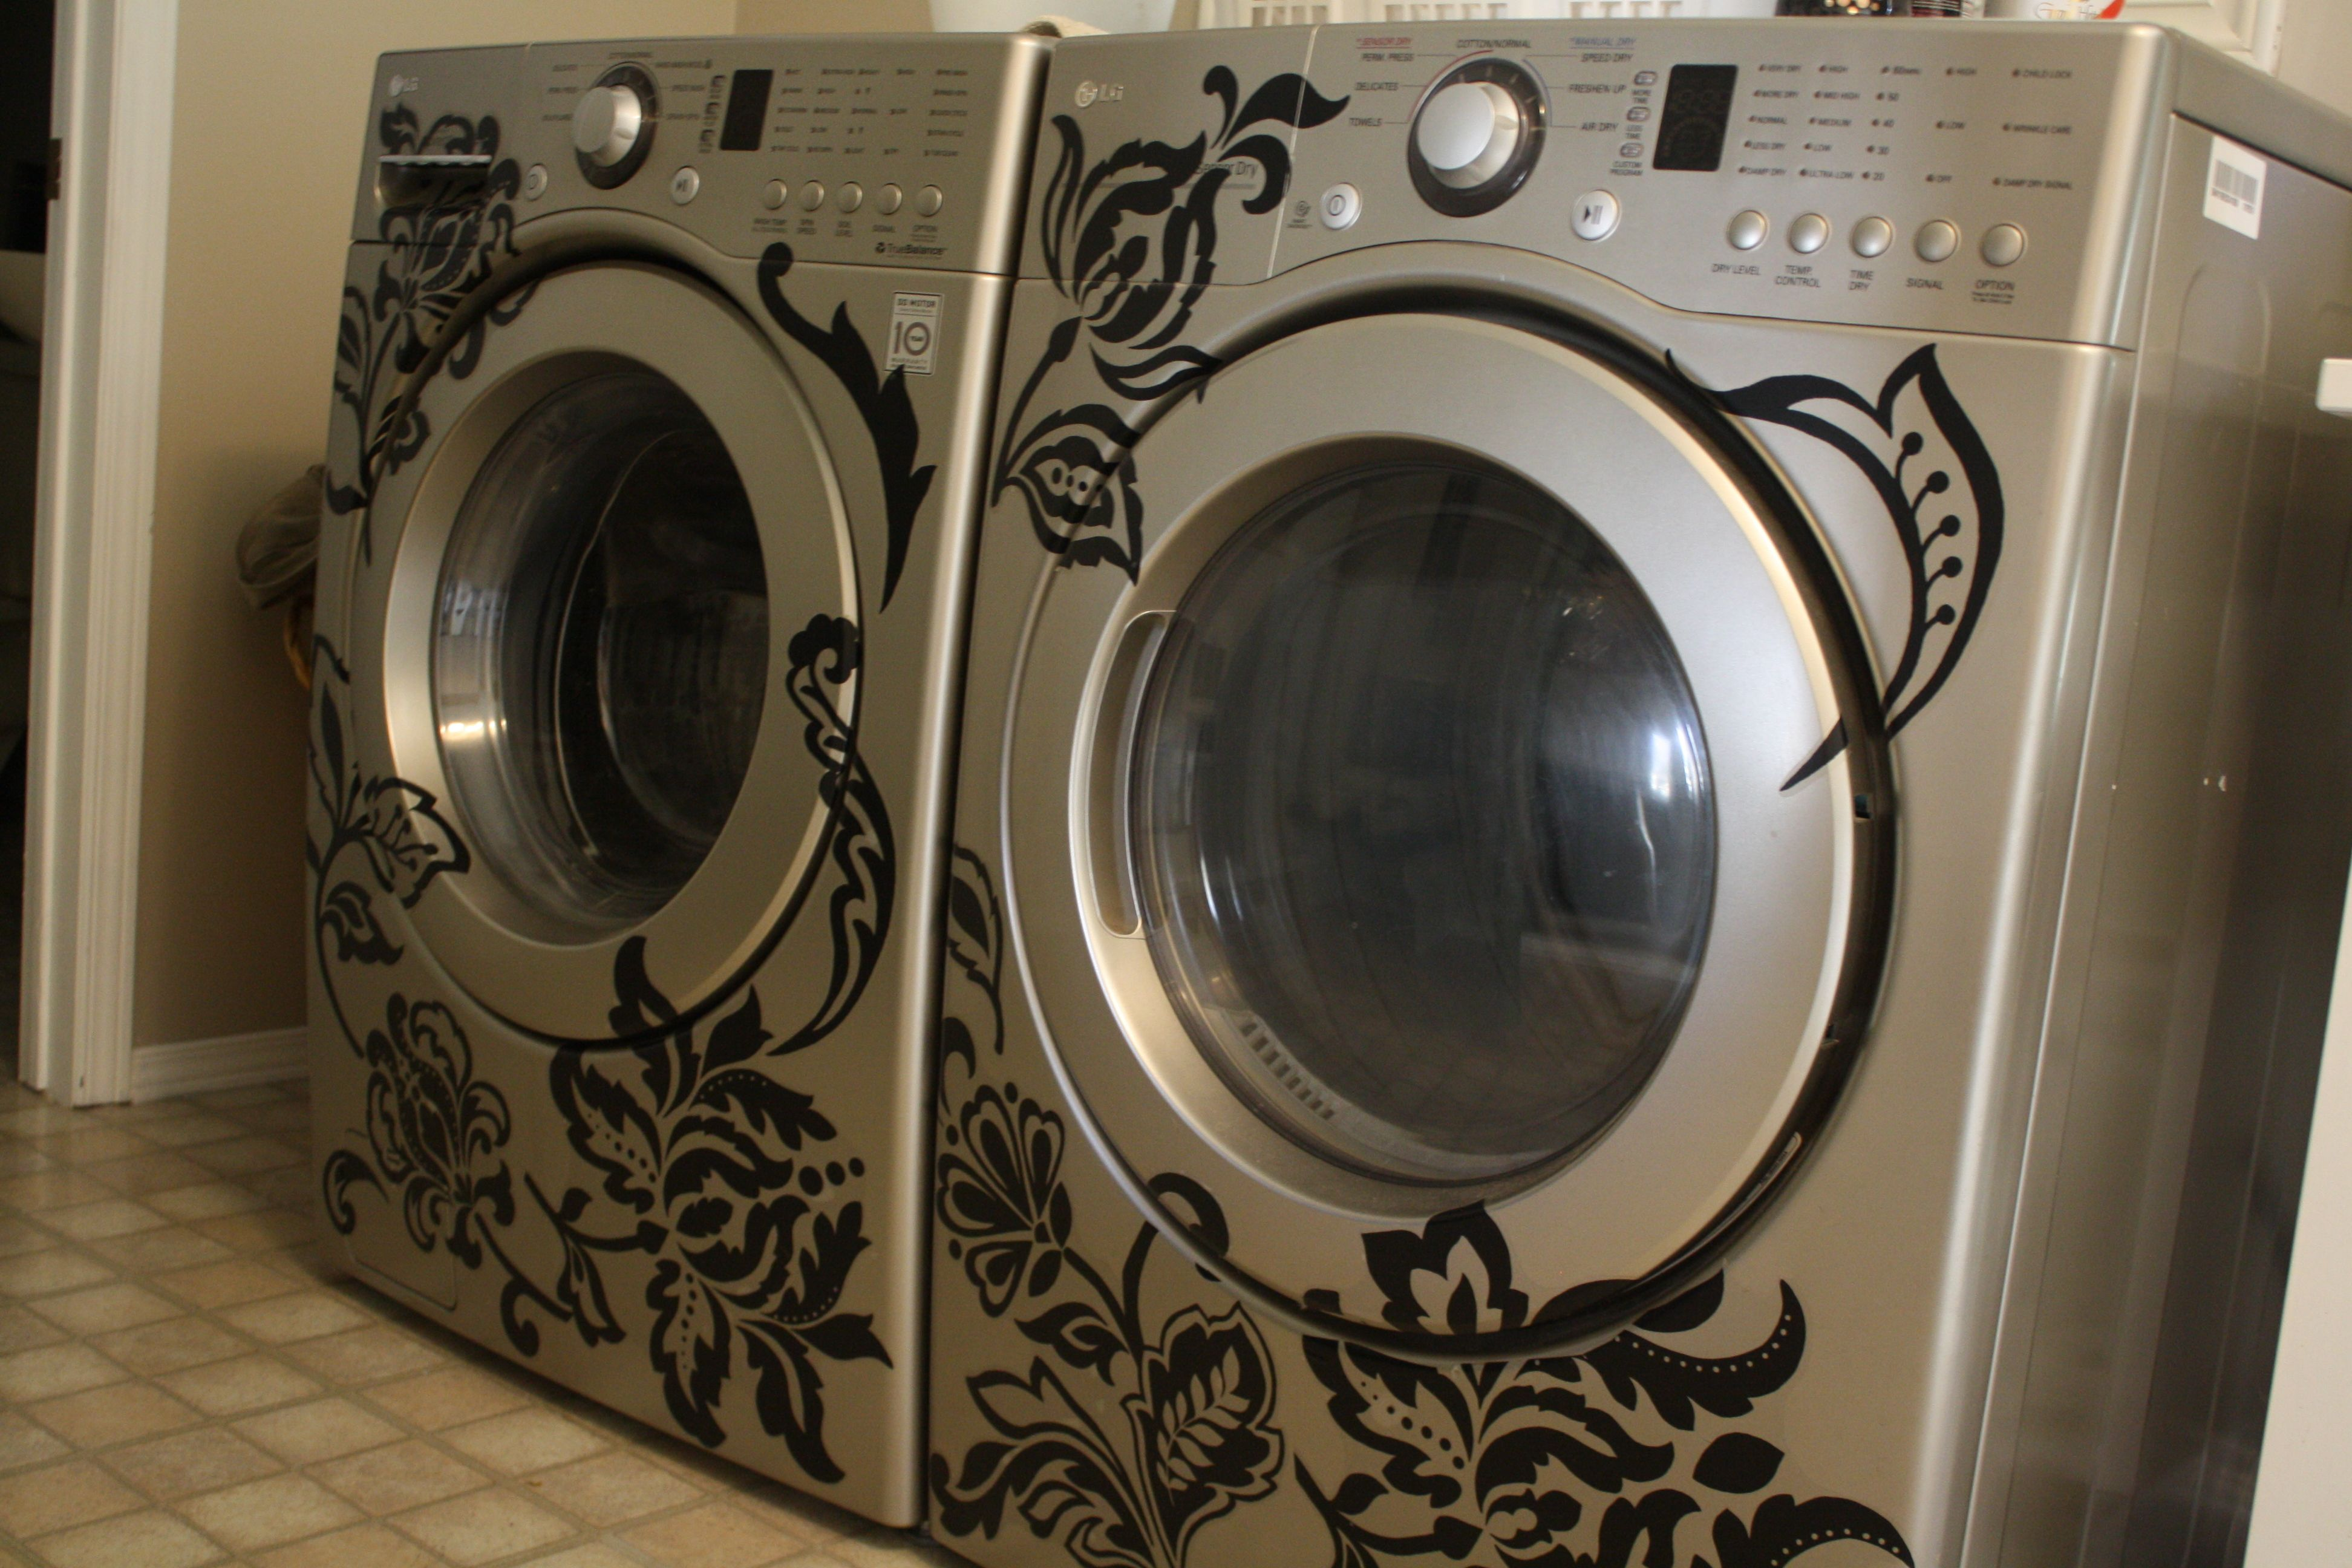 Laundry Room Washer And Dryer With Vinyl Wall Decal From